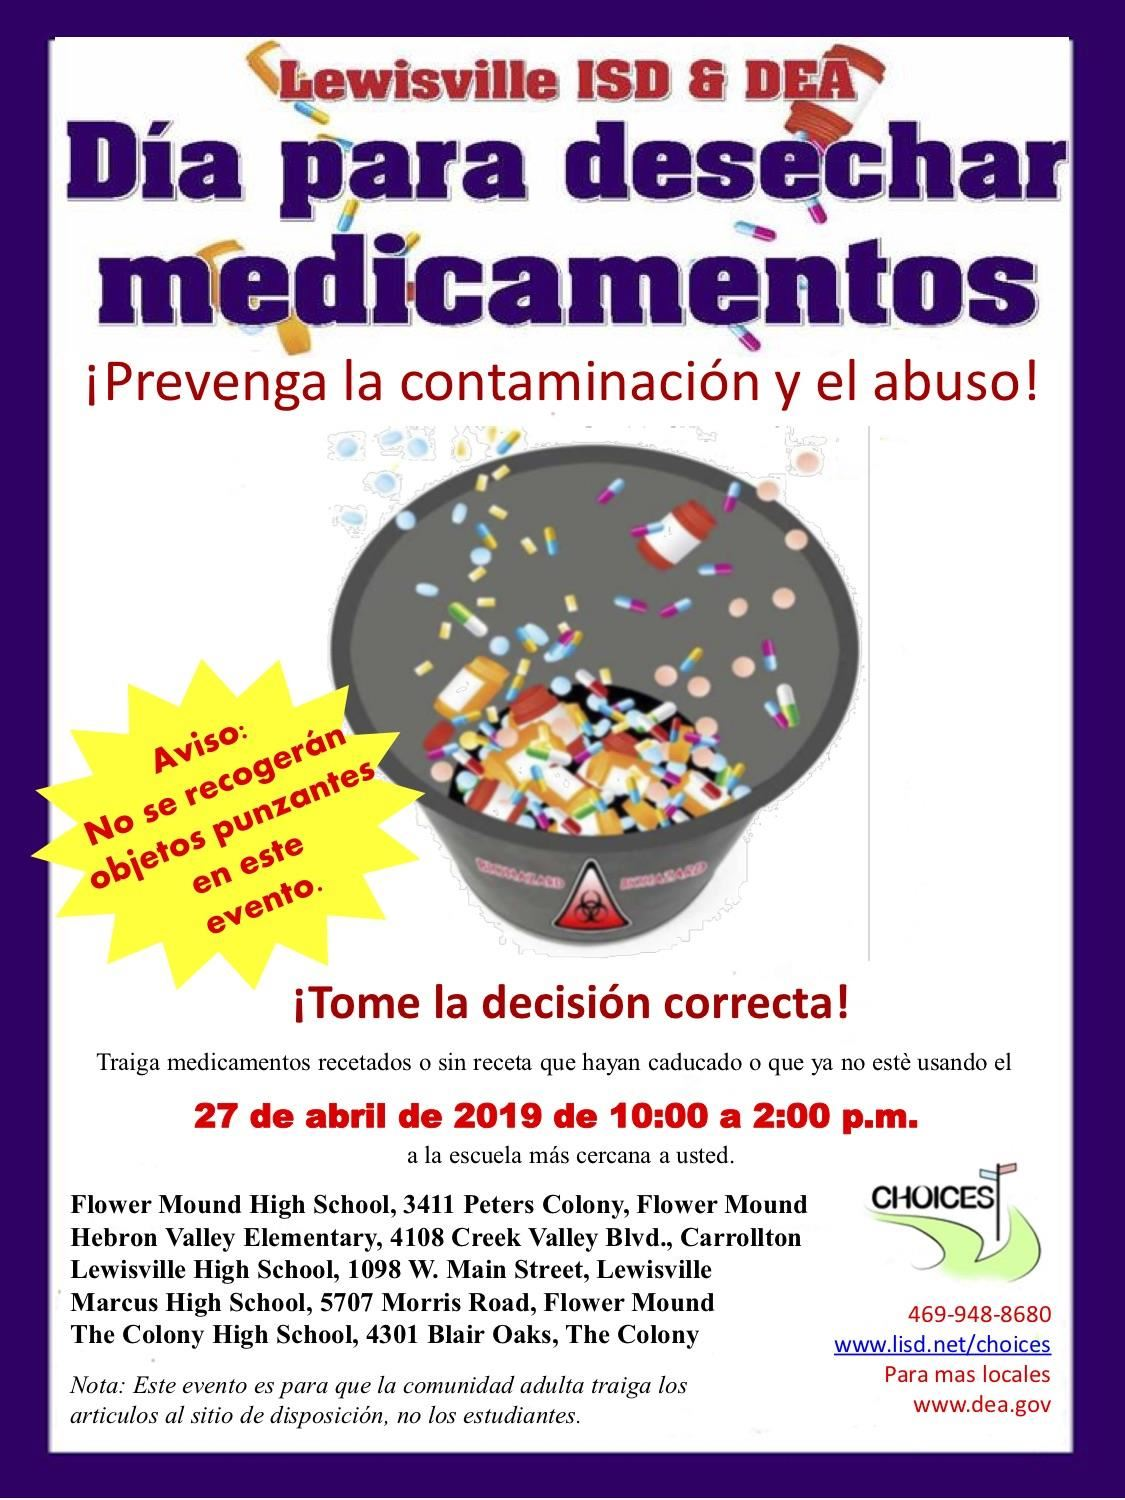 Medication Disposal Day Spanish